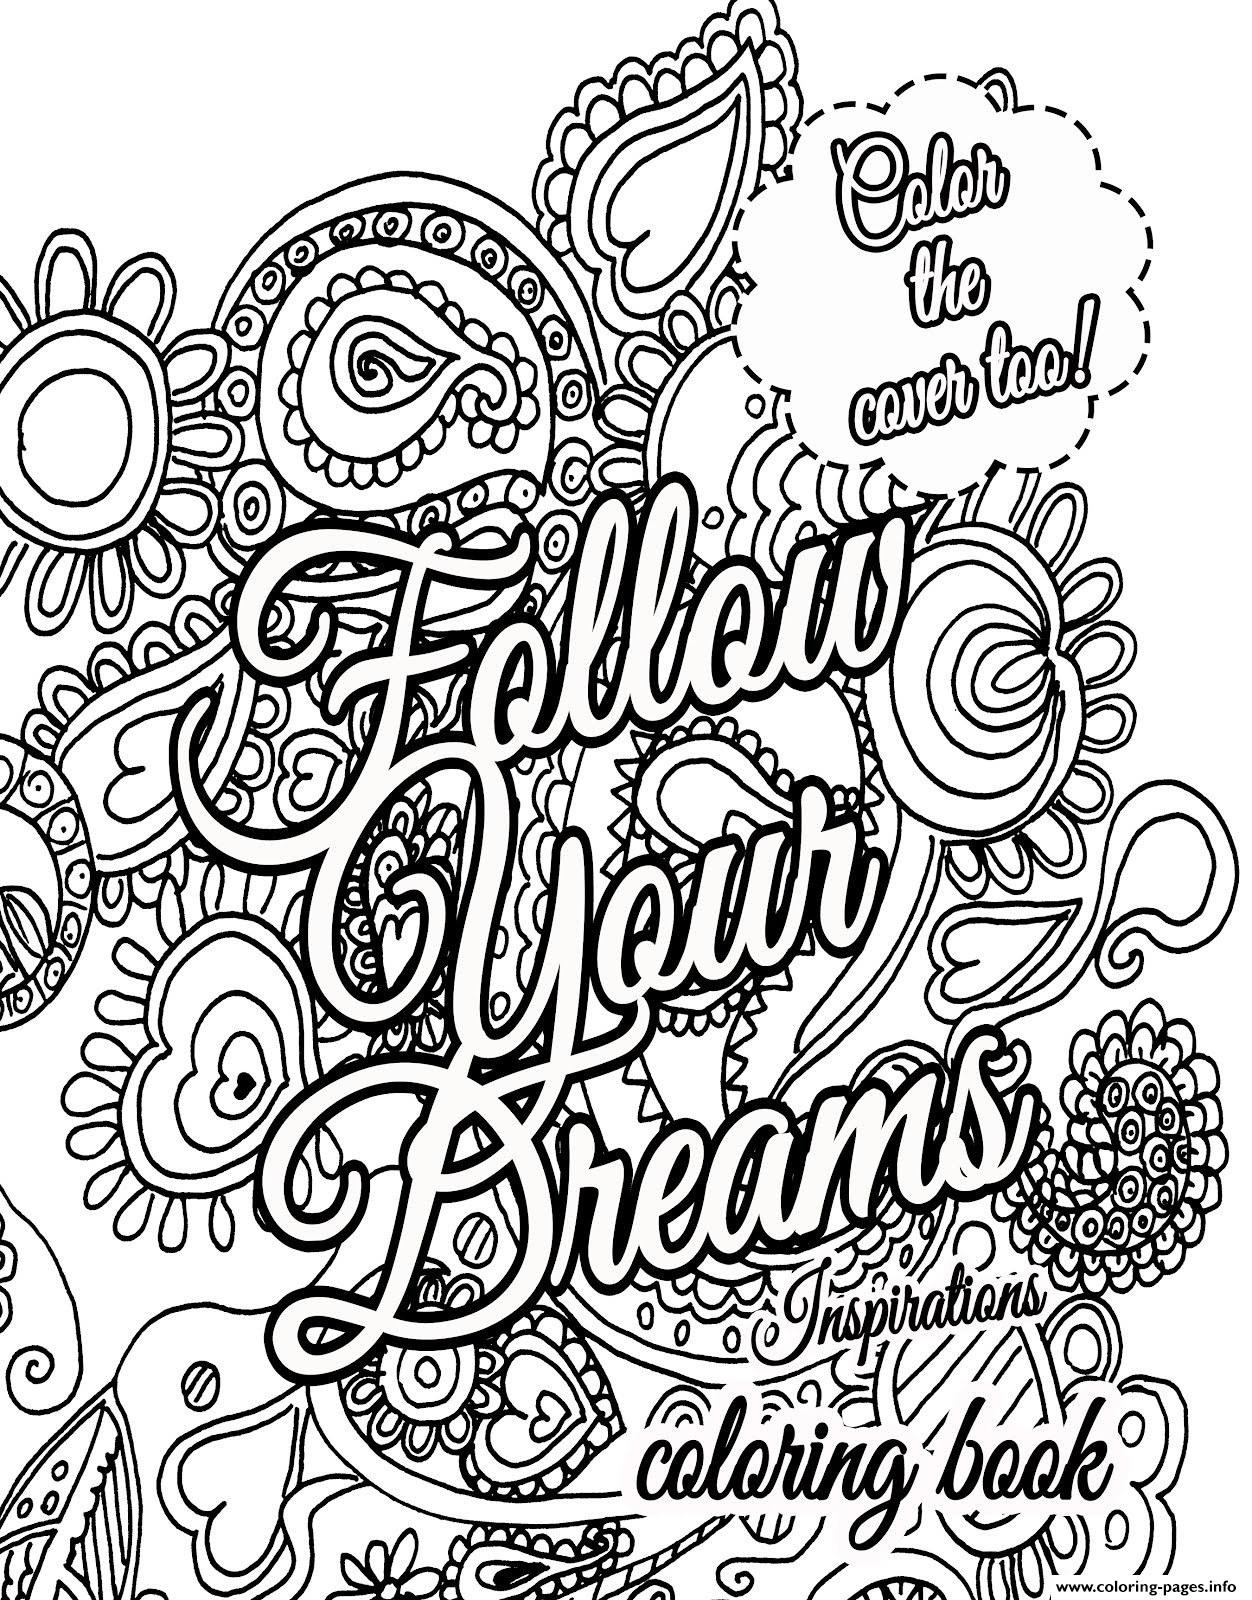 Quote Coloring Pages For Adults  Free Printable Inspirational Quotes Coloring Pages The